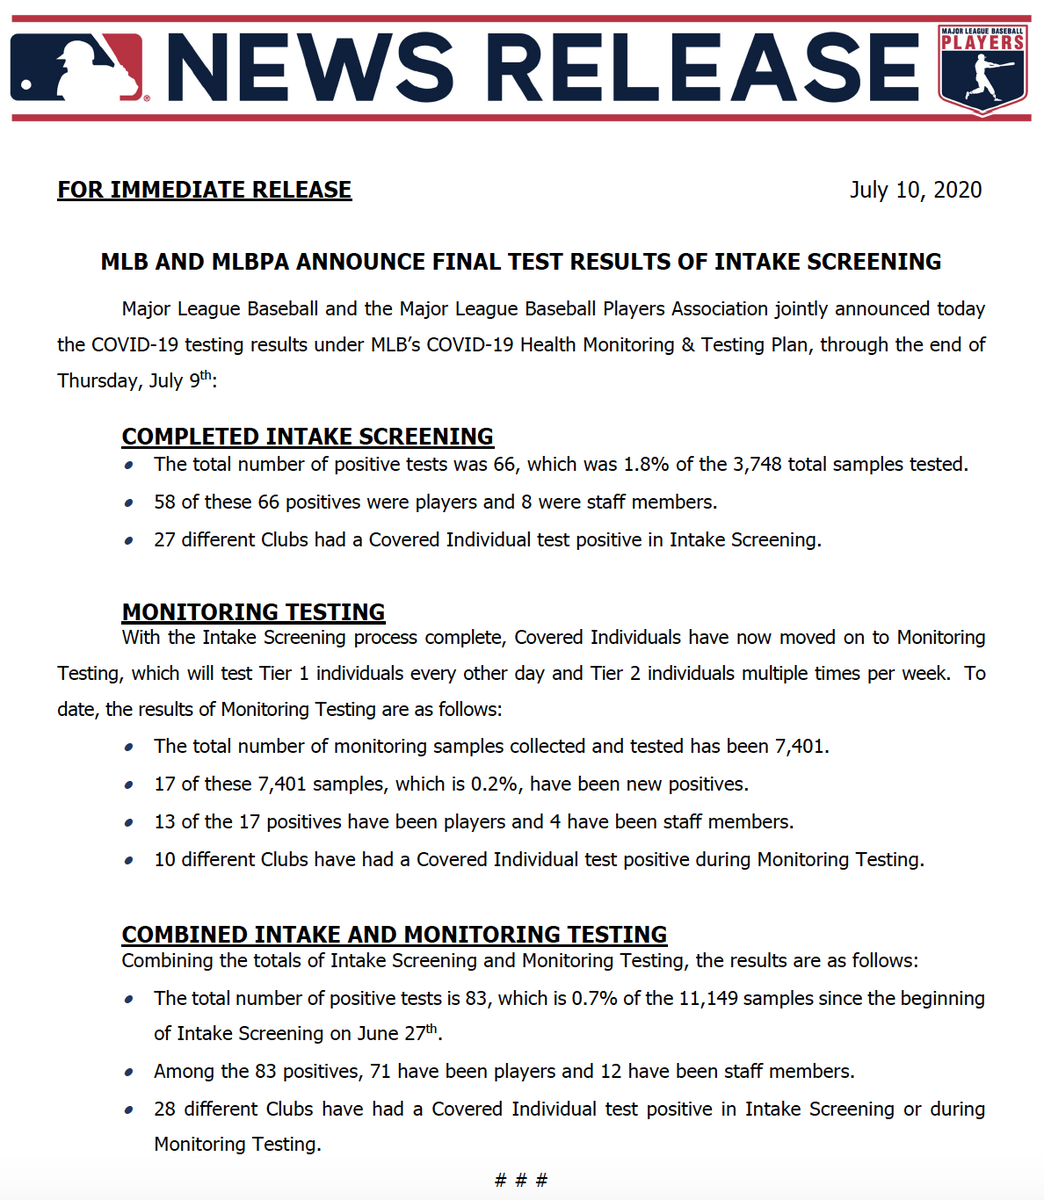 Testing results under MLB's COVID-19 Health Monitoring & Testing Plan were jointly announced today by @MLB and the @MLB_PLAYERS. https://t.co/3xwXFXC2Bm